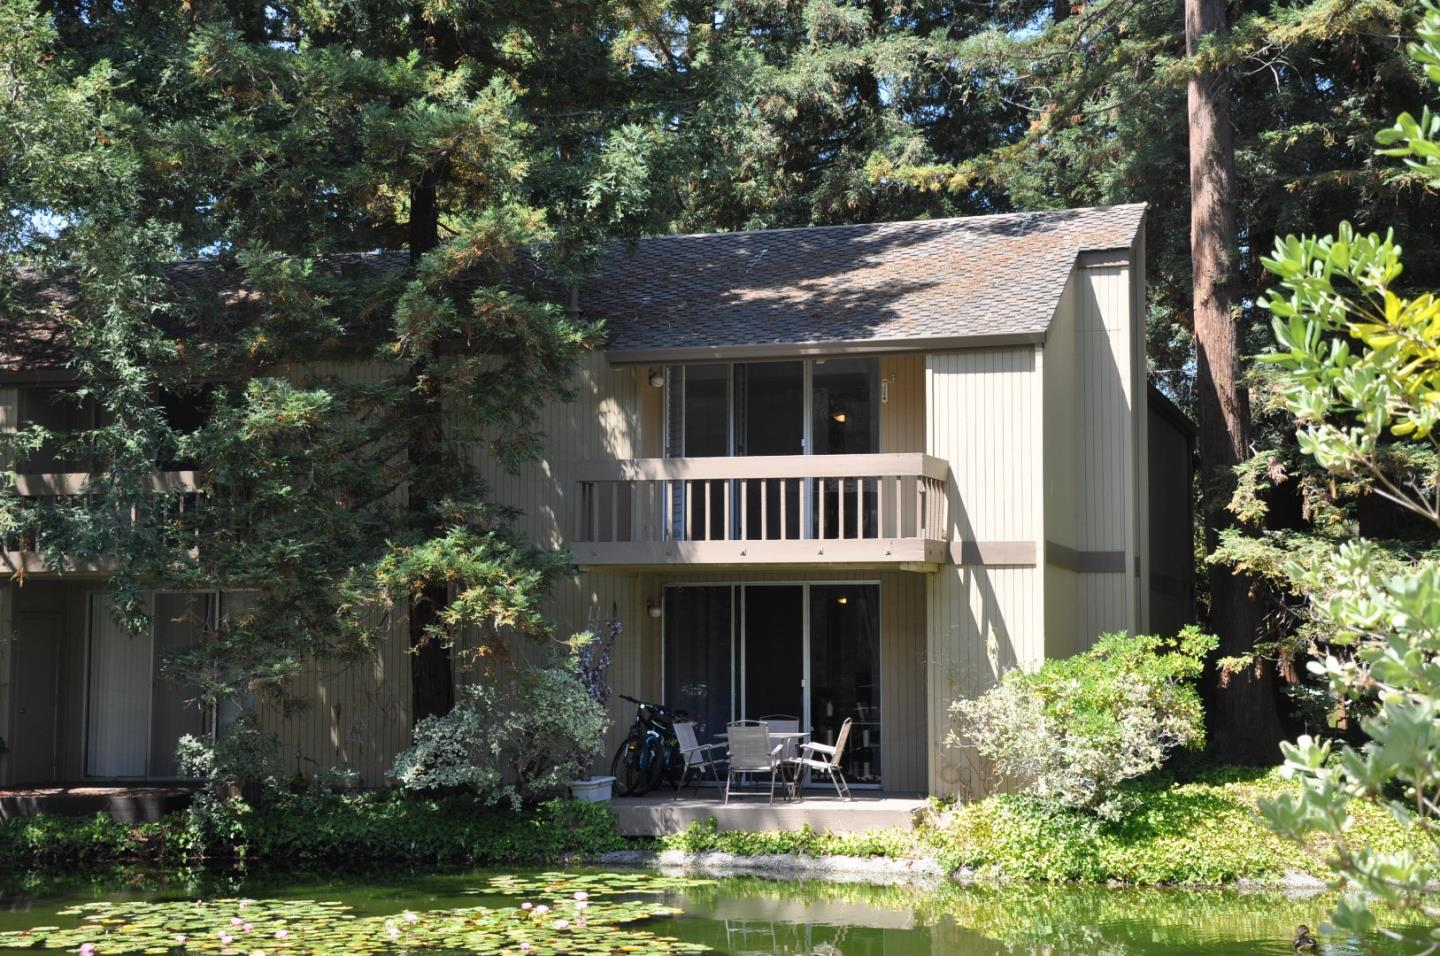 505 CYPRESS POINT DR 252, MOUNTAIN VIEW, CA 94043